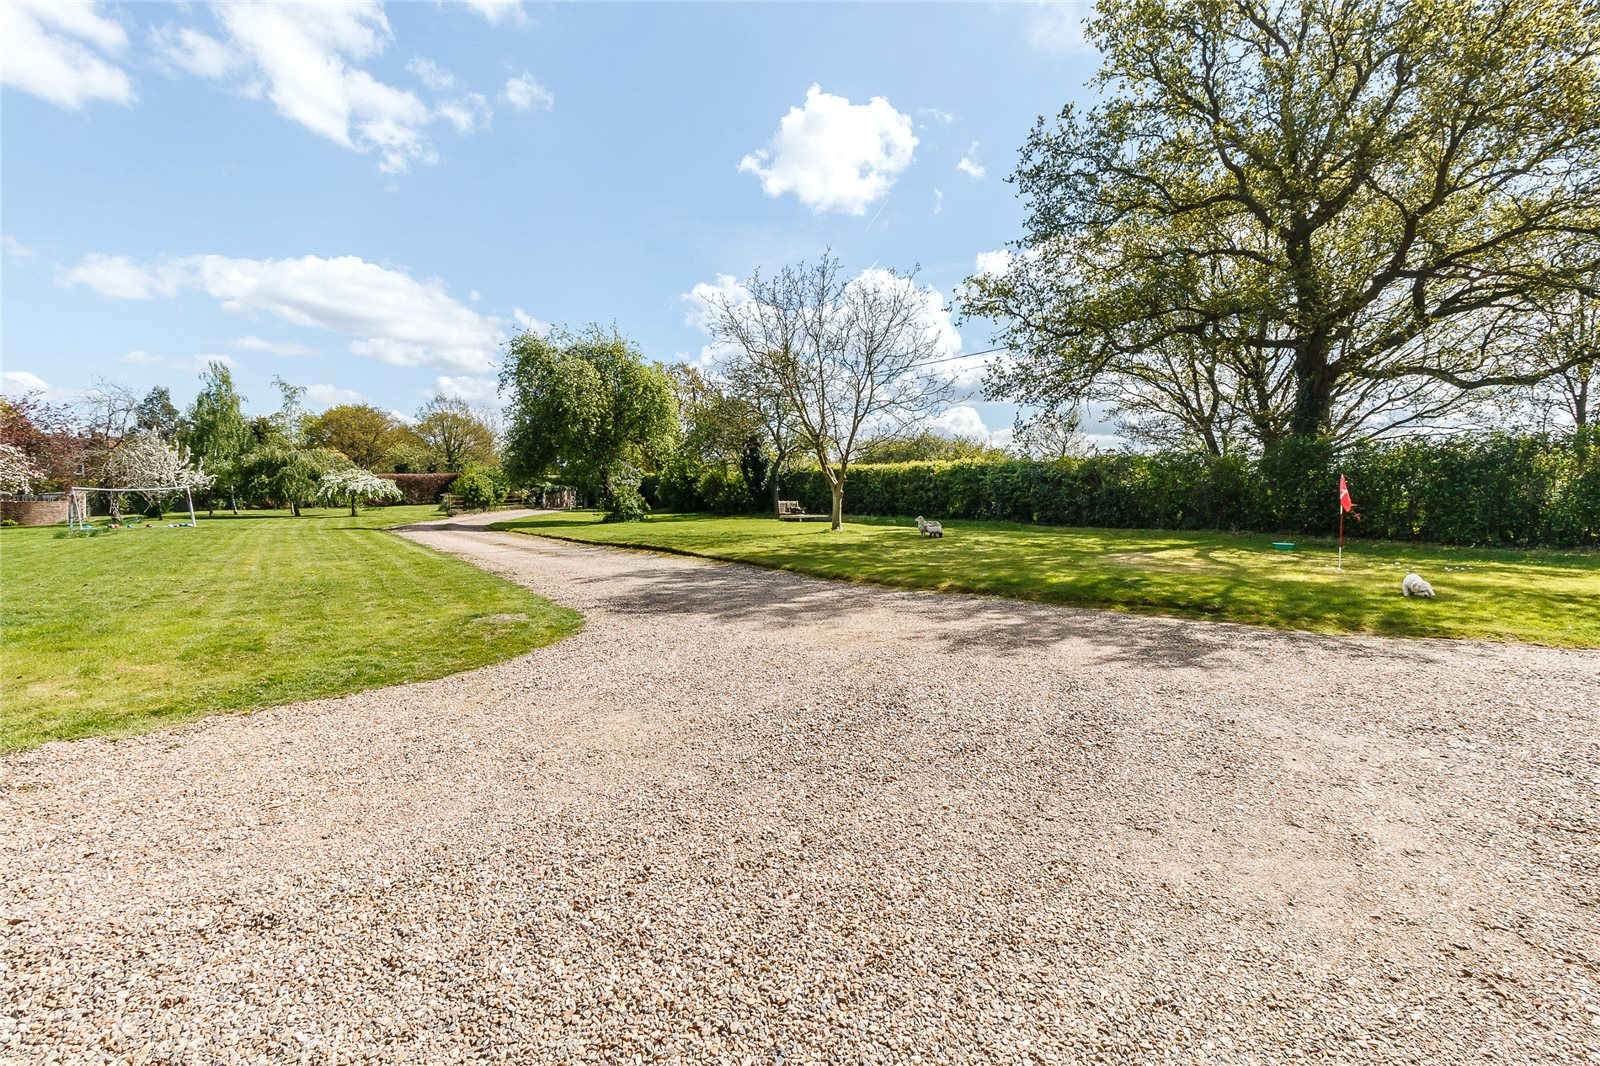 Additional photo for property listing at Sheepcote Lane, Paley Street, Nr Maidenhead, Berkshire, SL6 Berkshire, Engeland